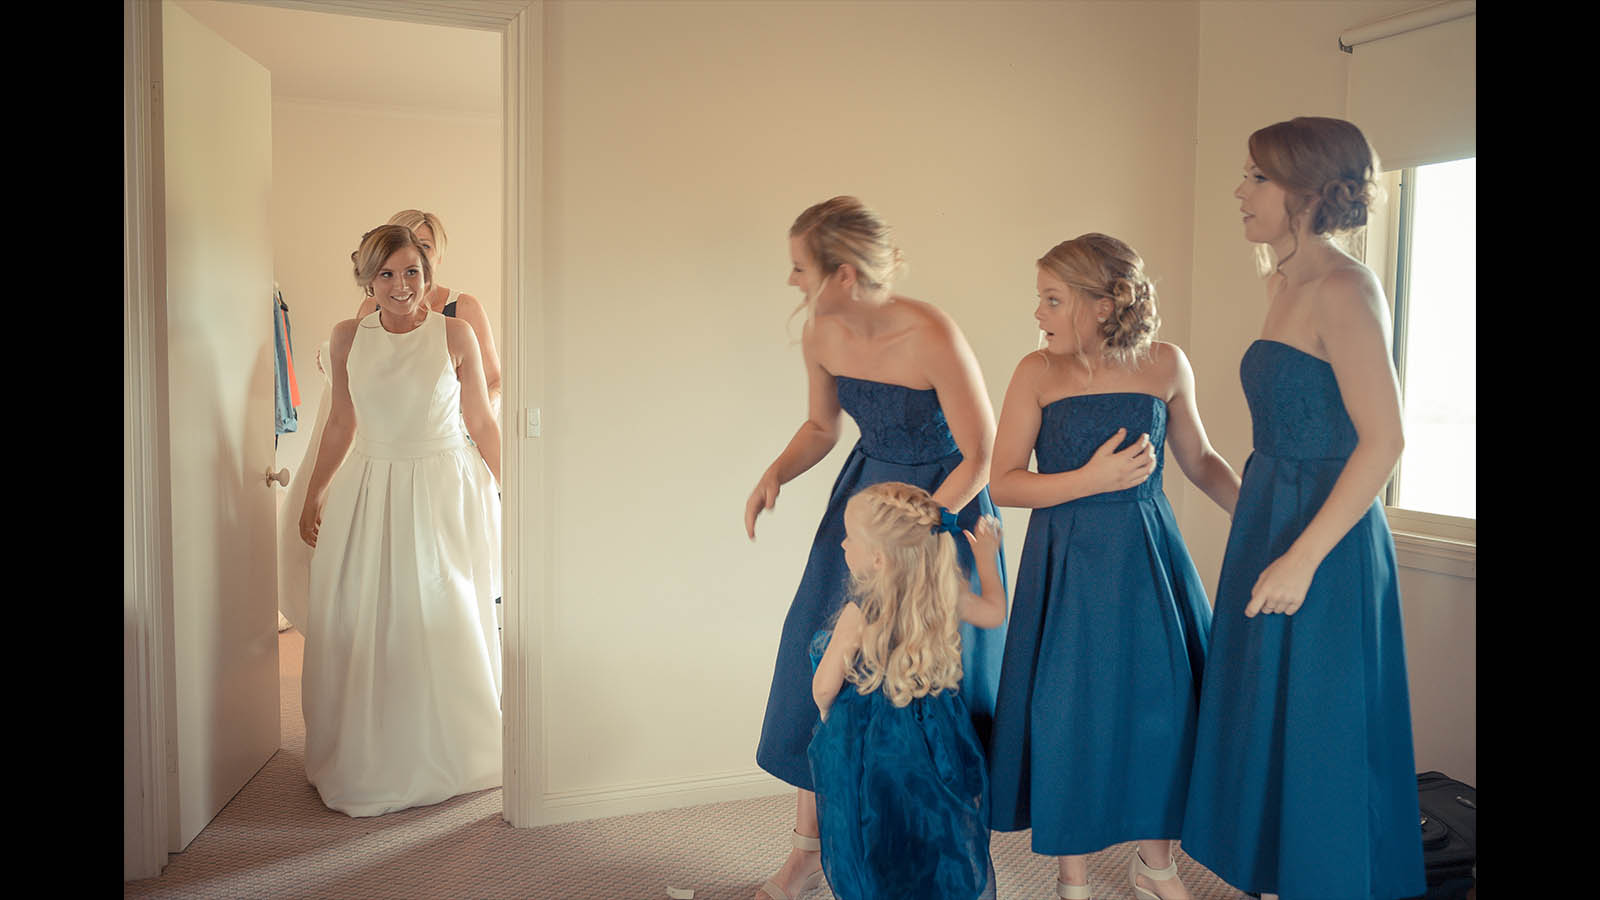 Melbourne-wedding-photography 18